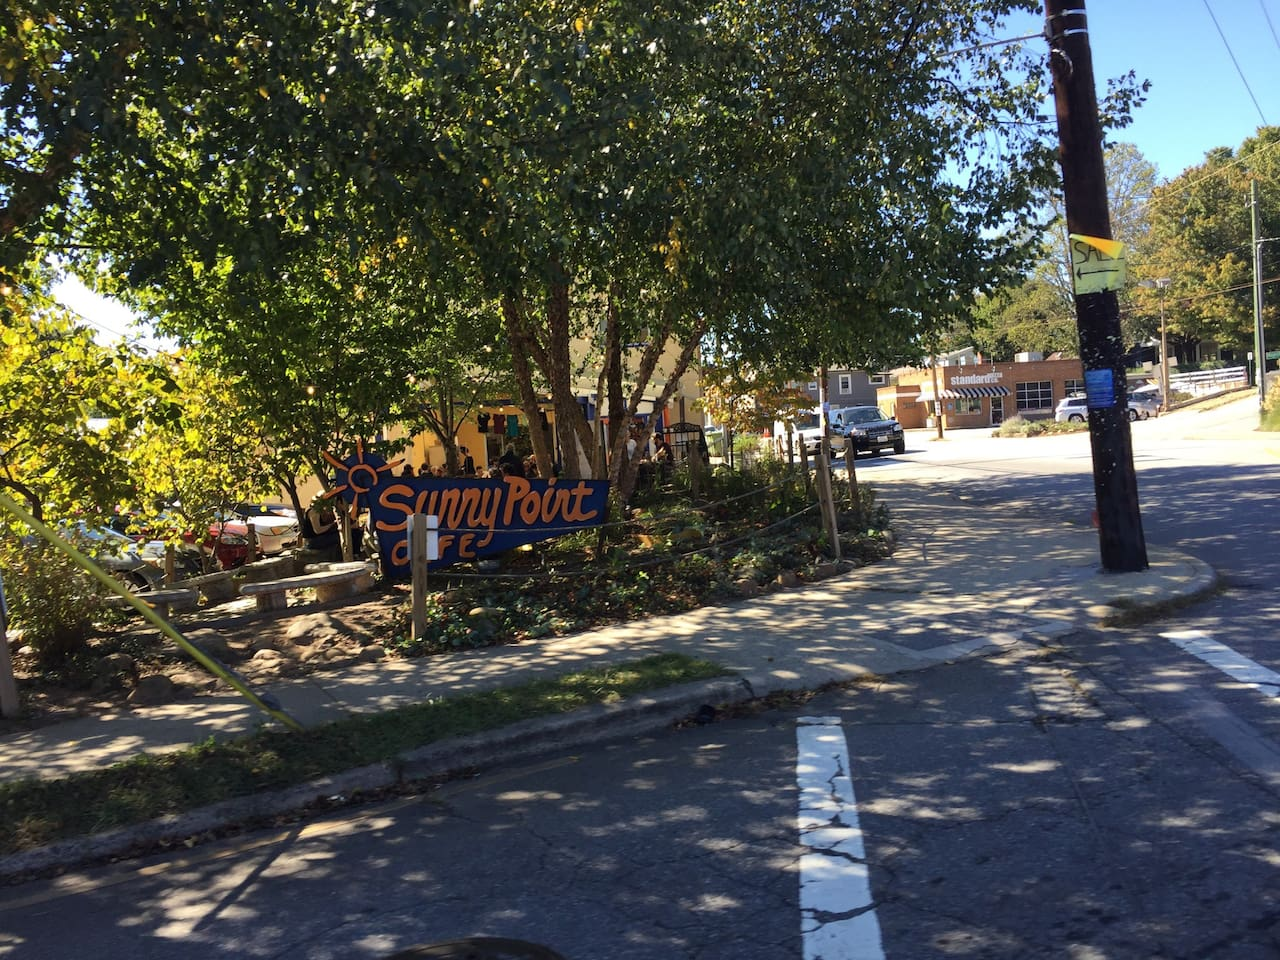 """Our place is only a ten minute walk to West Asheville shops and restaurants, such as Firestorm Books and Sunny Point Café (pictured here), on the corner of Haywood Road and State Street. One frequent visitor to Asheville commented, """"Amazing space in the best neighborhood in Asheville."""""""